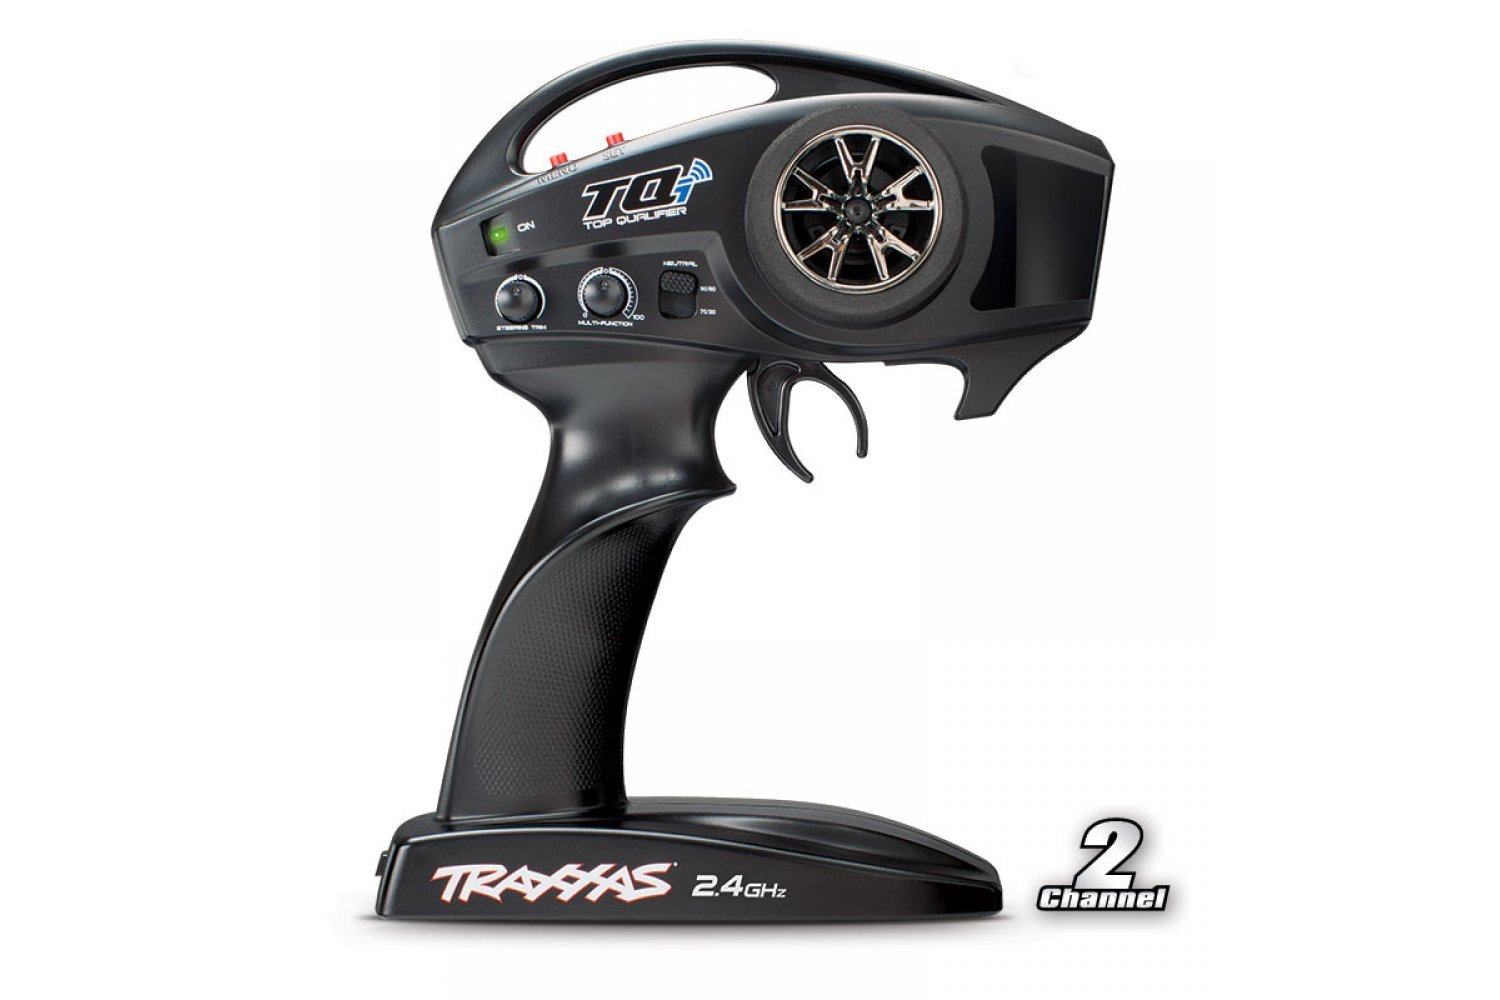 Traxxas Spartan Electric RC Speed Boat